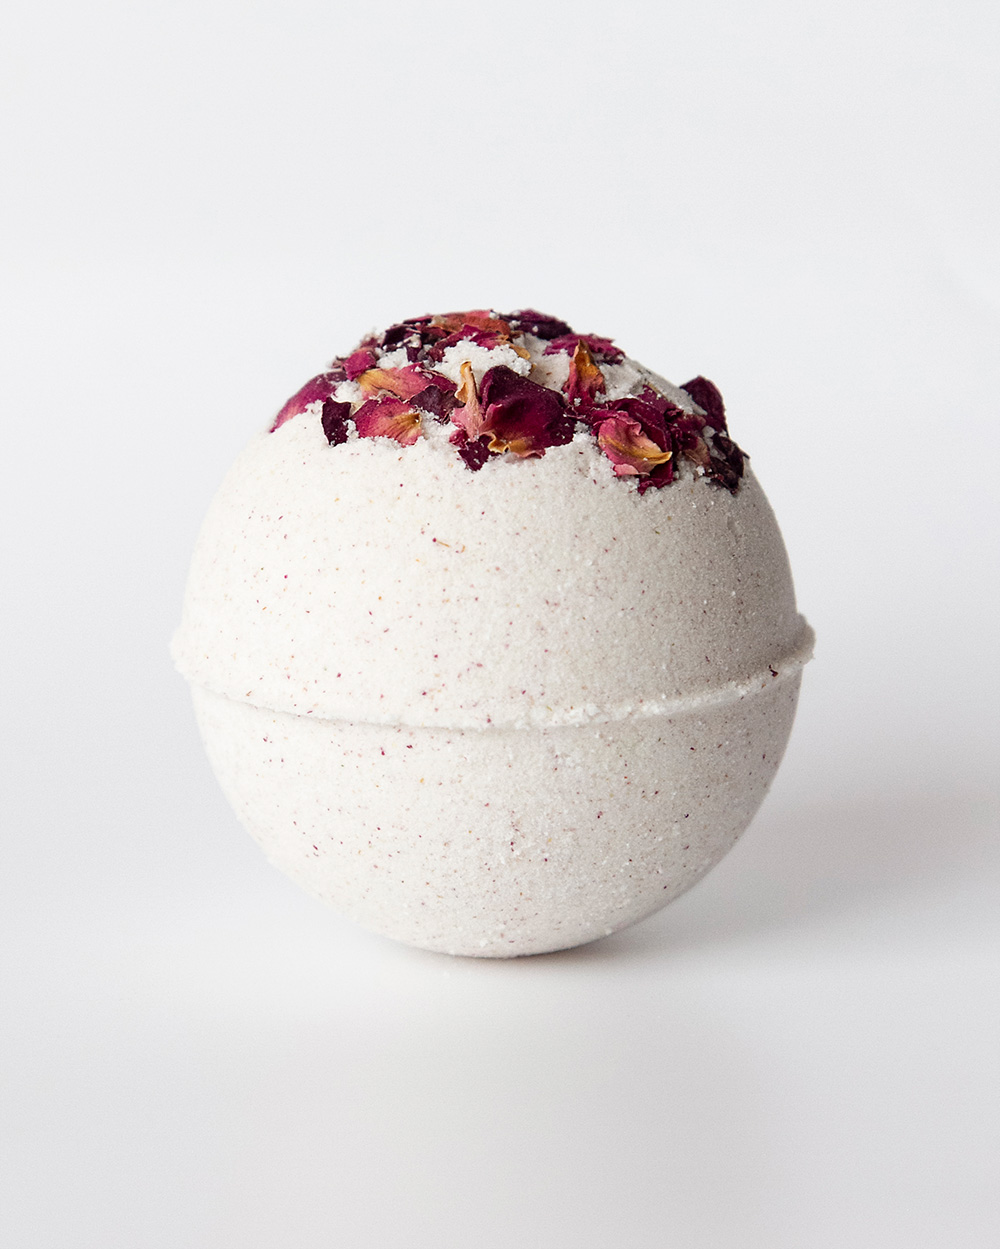 Skinapy natural and organic bath bomb with rose petal scent